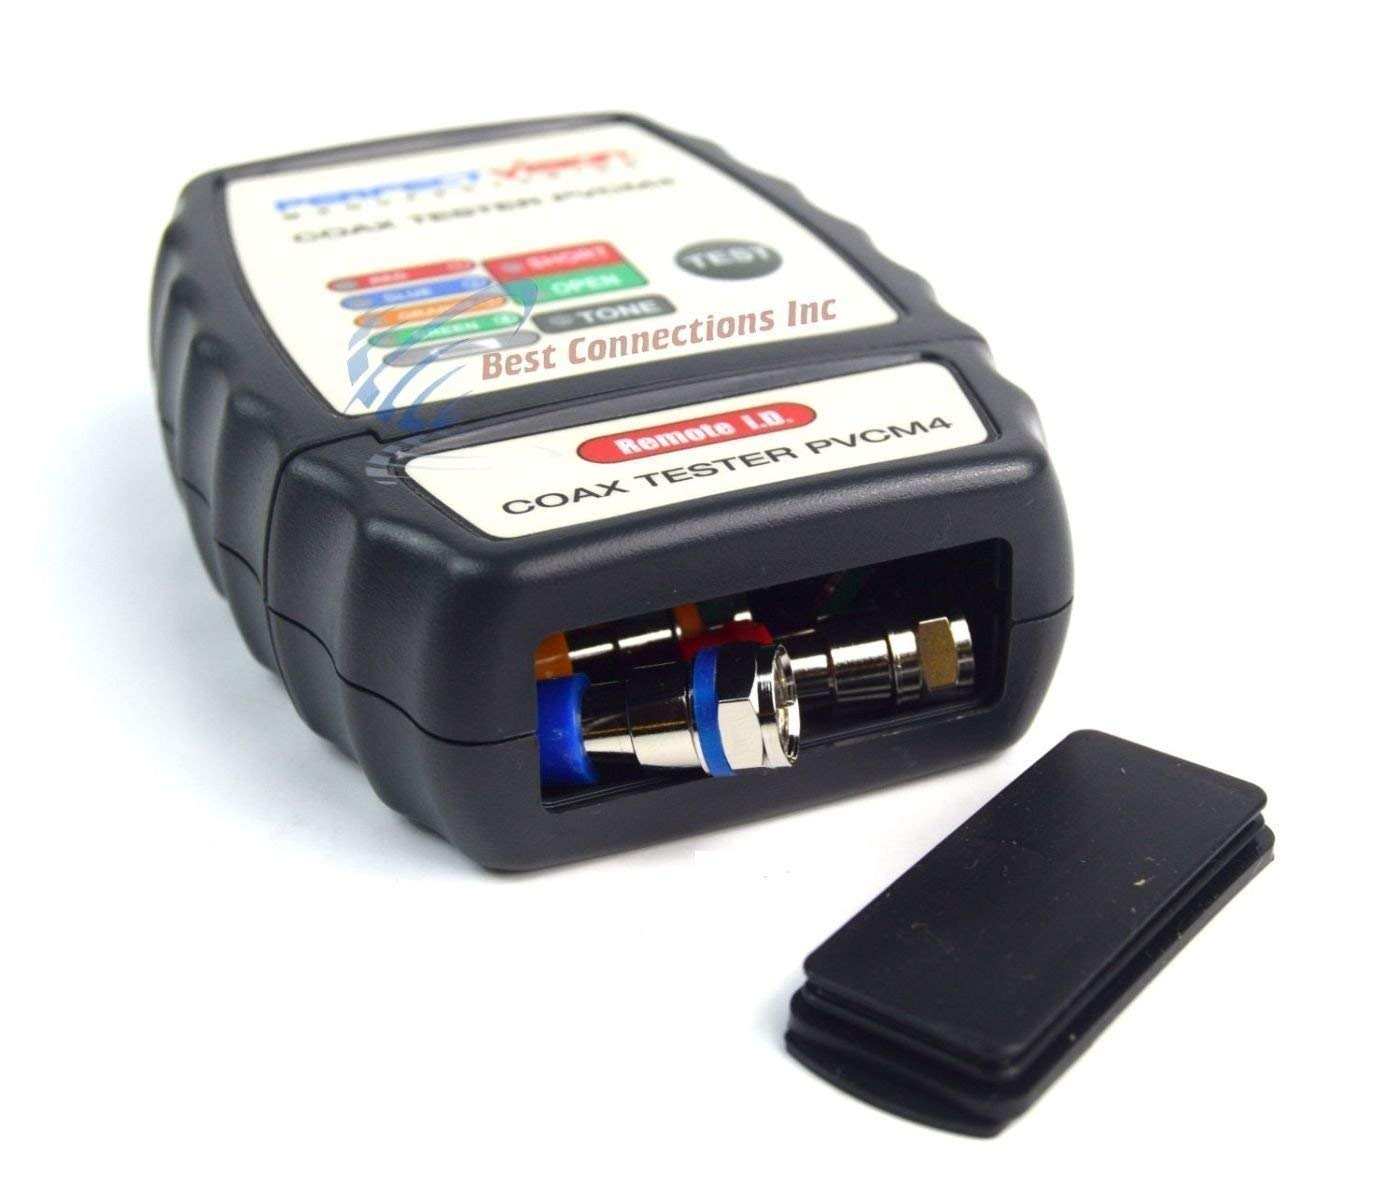 4 Way Coax Cable Mapper Tracker Toner Tracer Finder RG6 RG59 Tool Perfect Vision